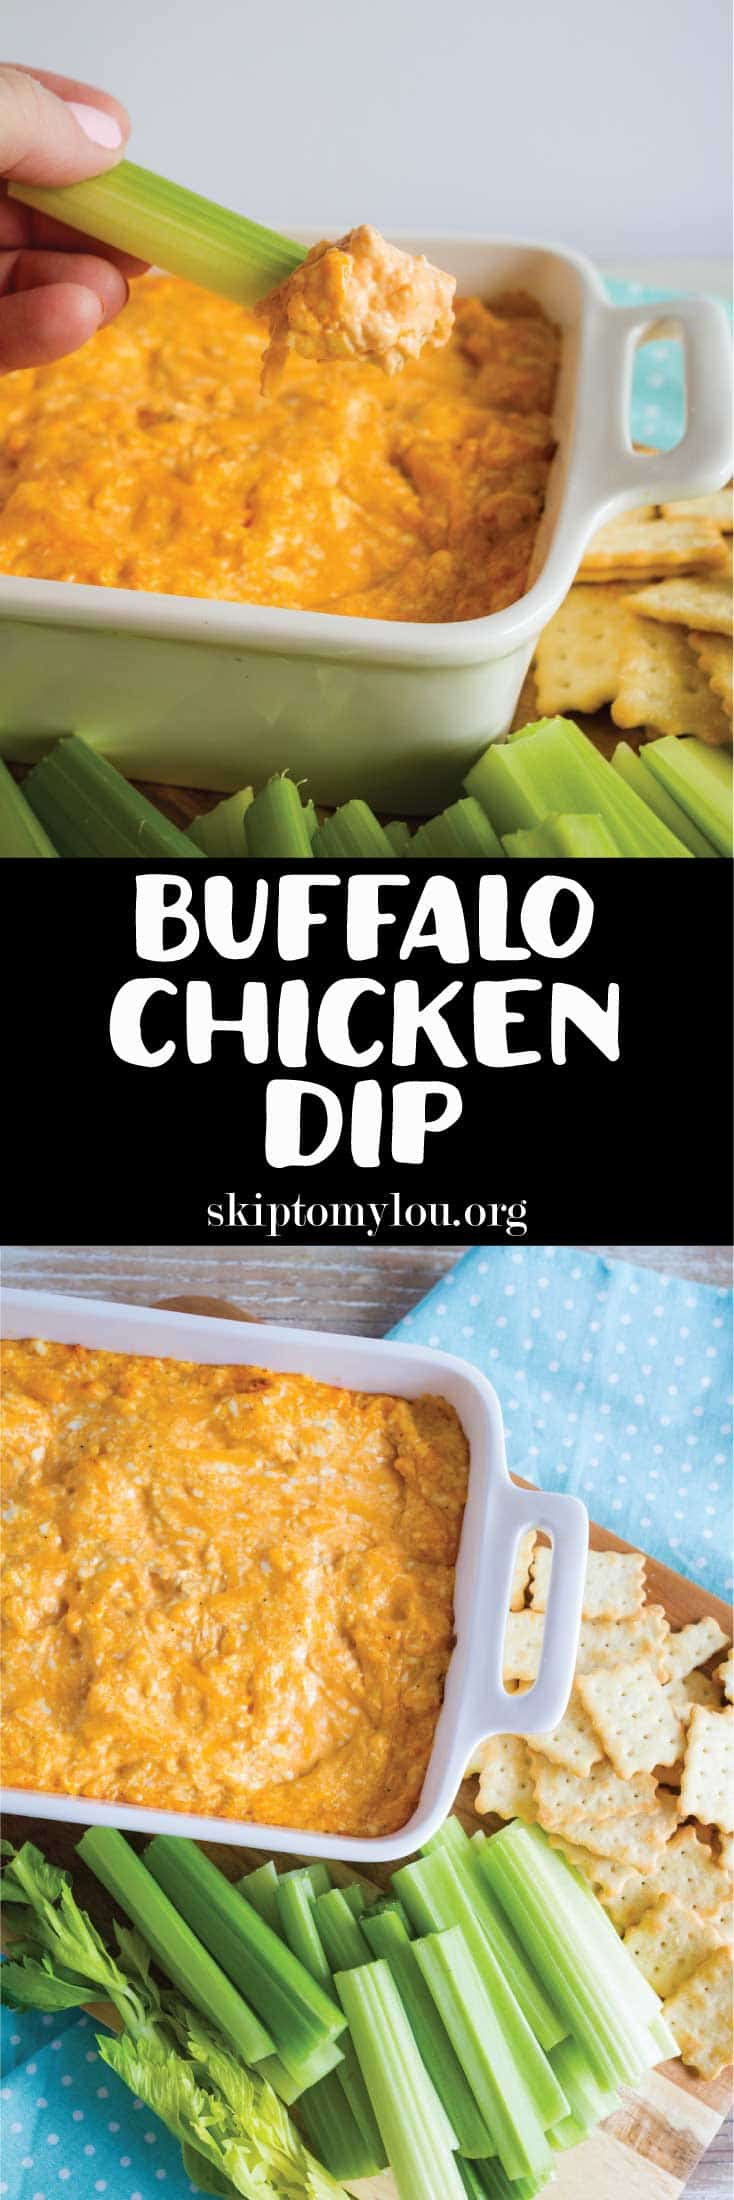 buffalo chicken dip with celery and crackers